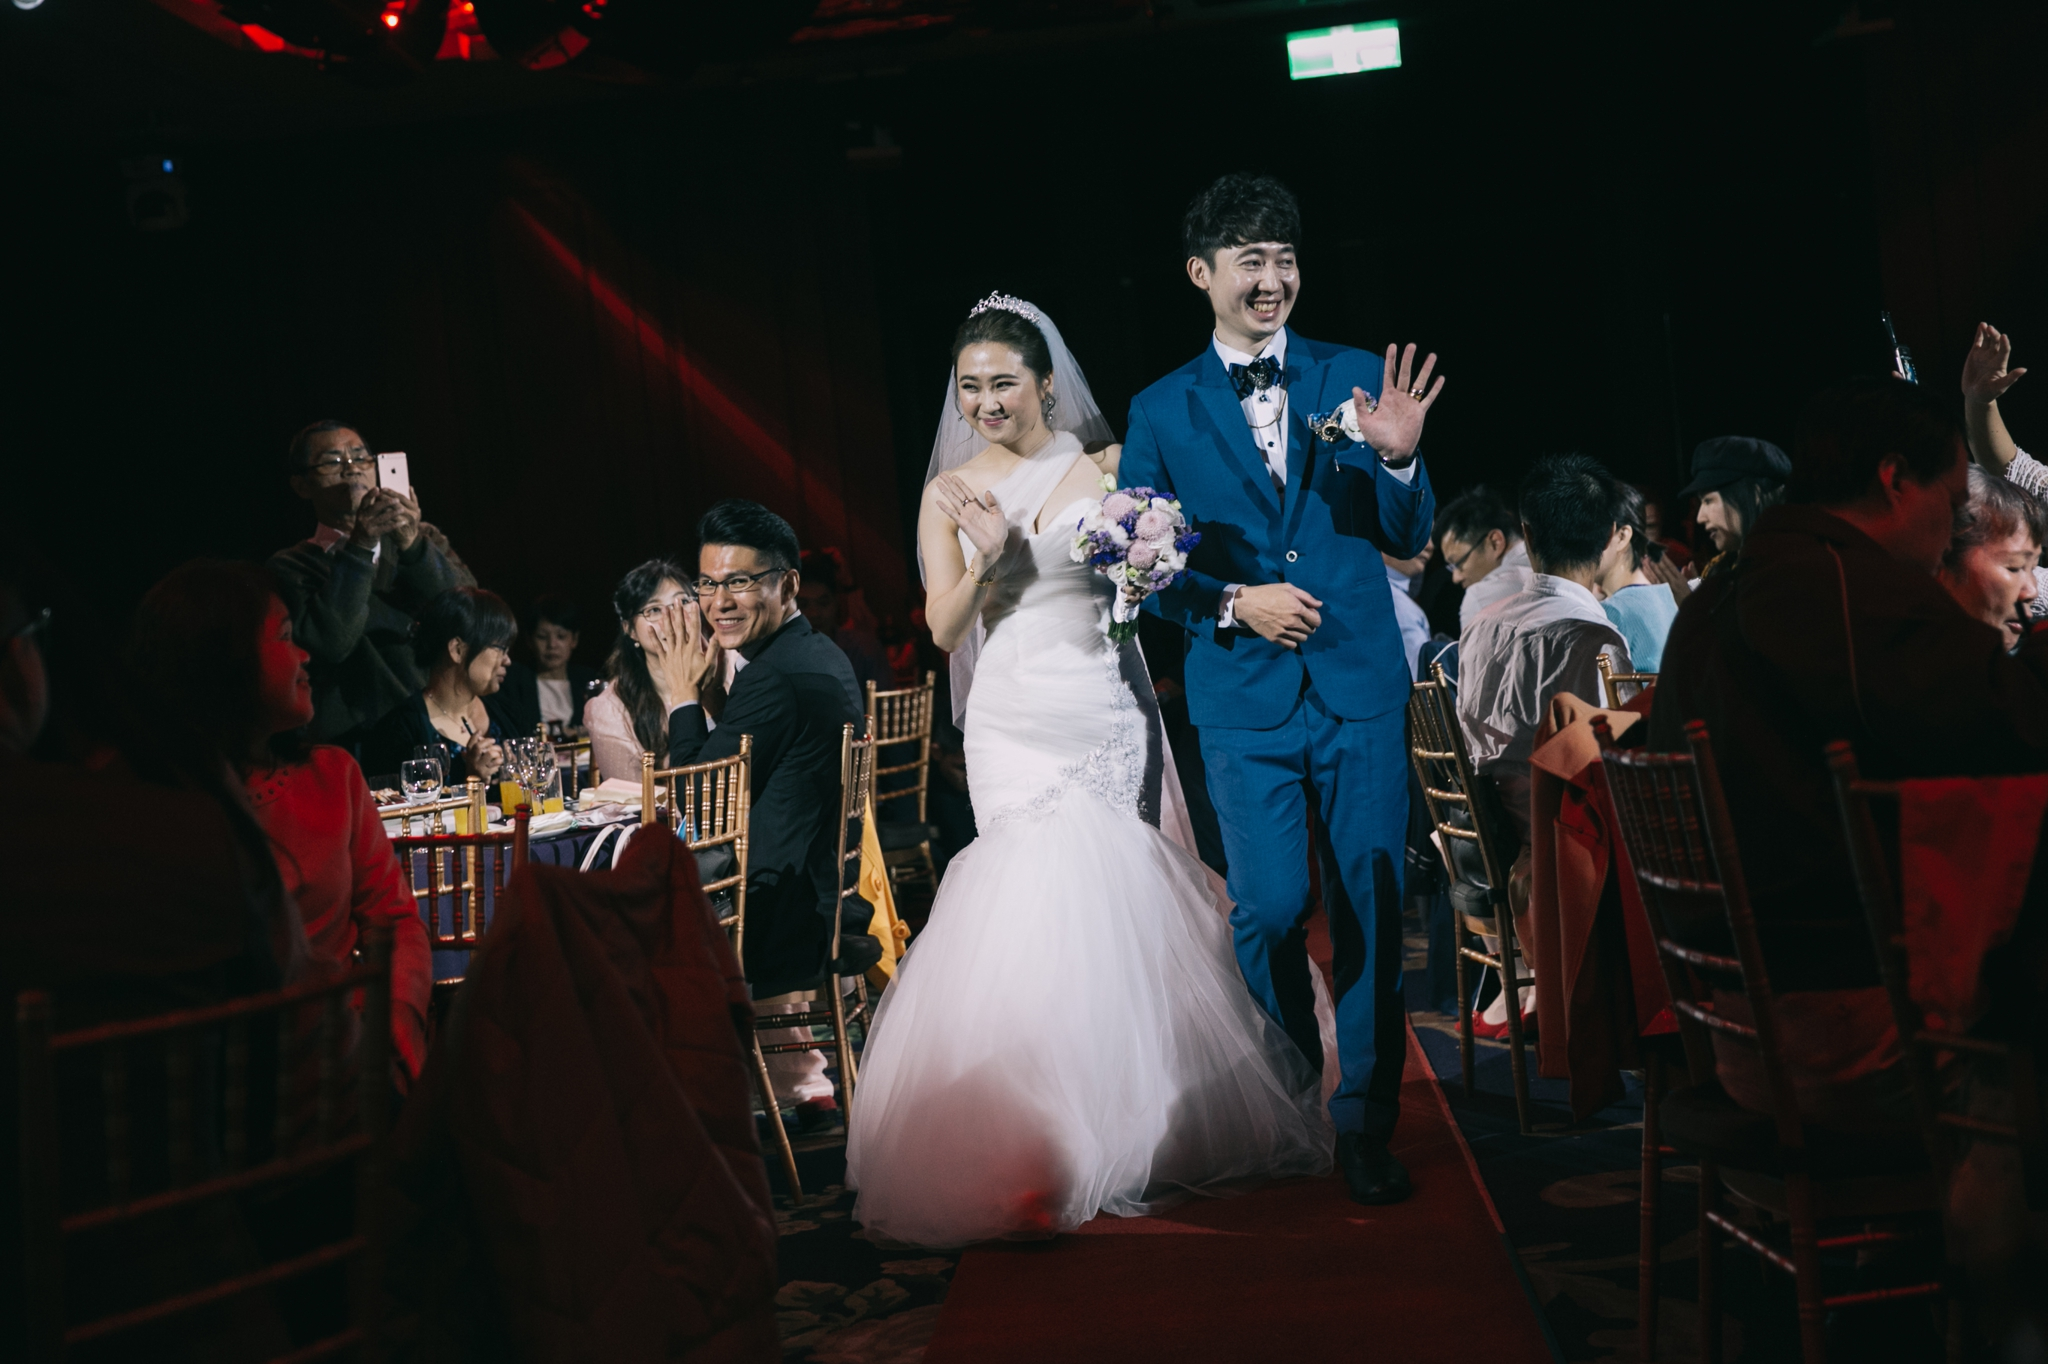 Keddy+Richard-wedding-新莊頤品飯店-185.jpg